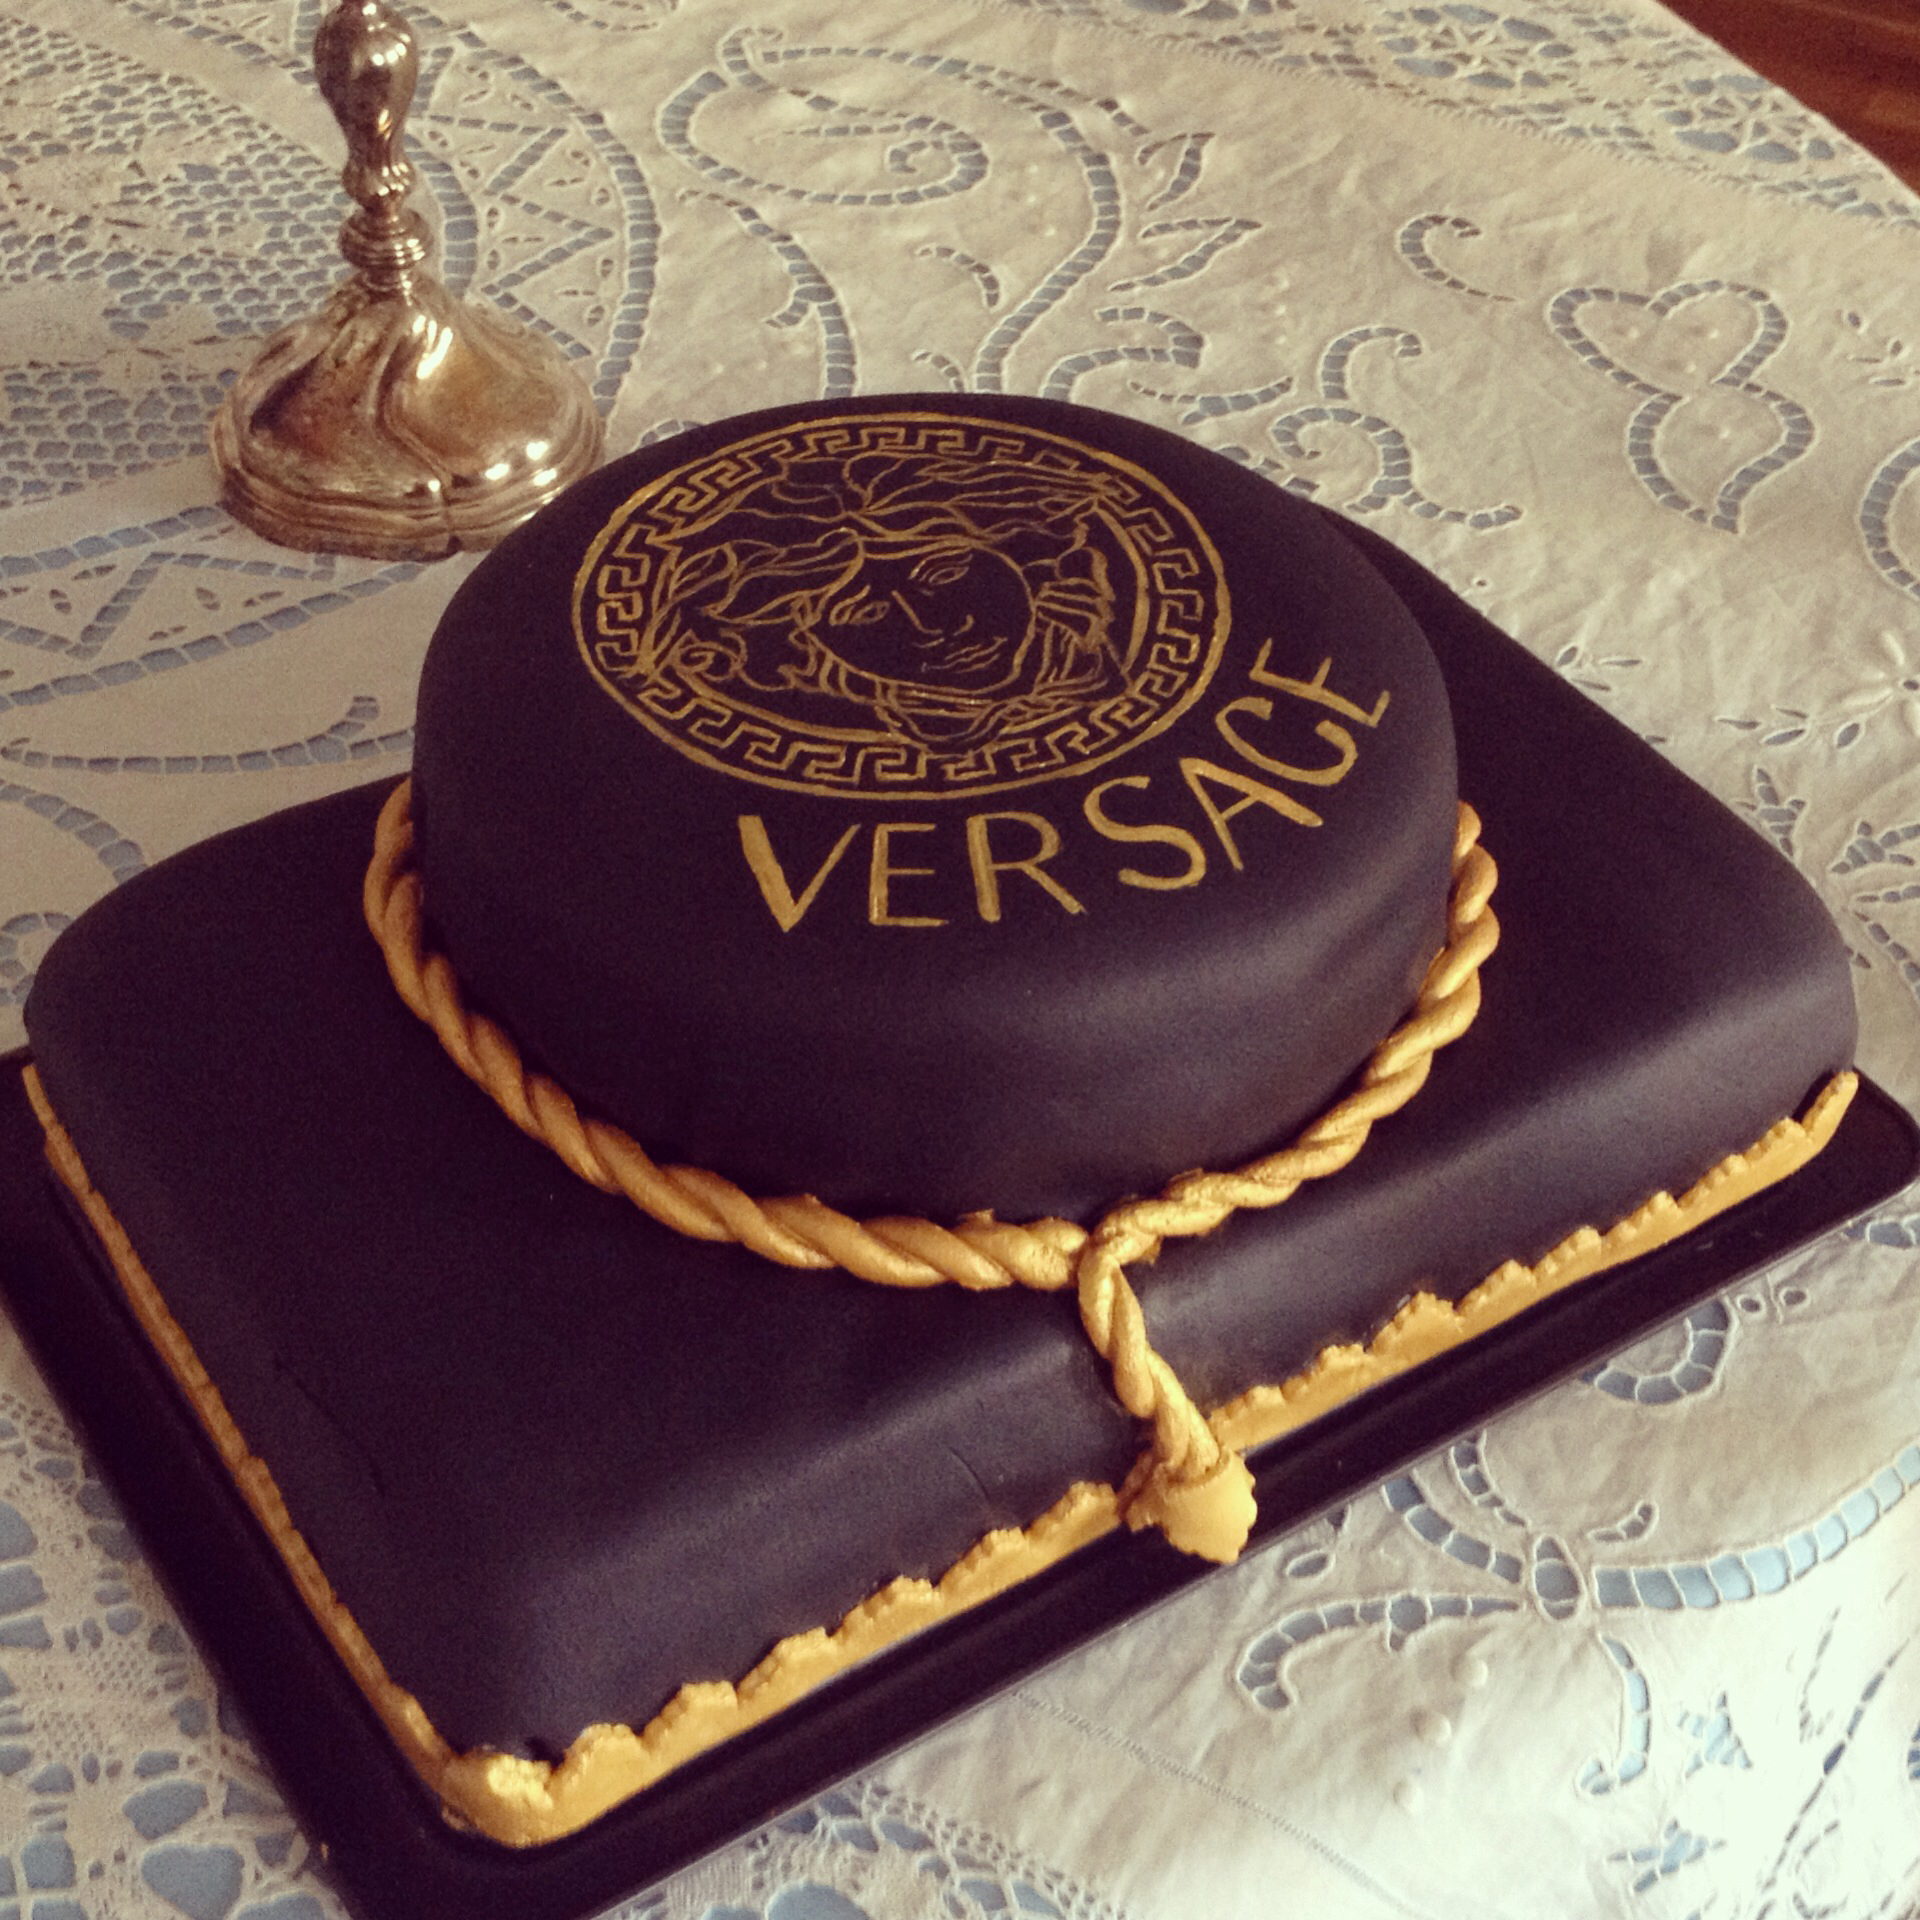 Versace Birthday Cakes